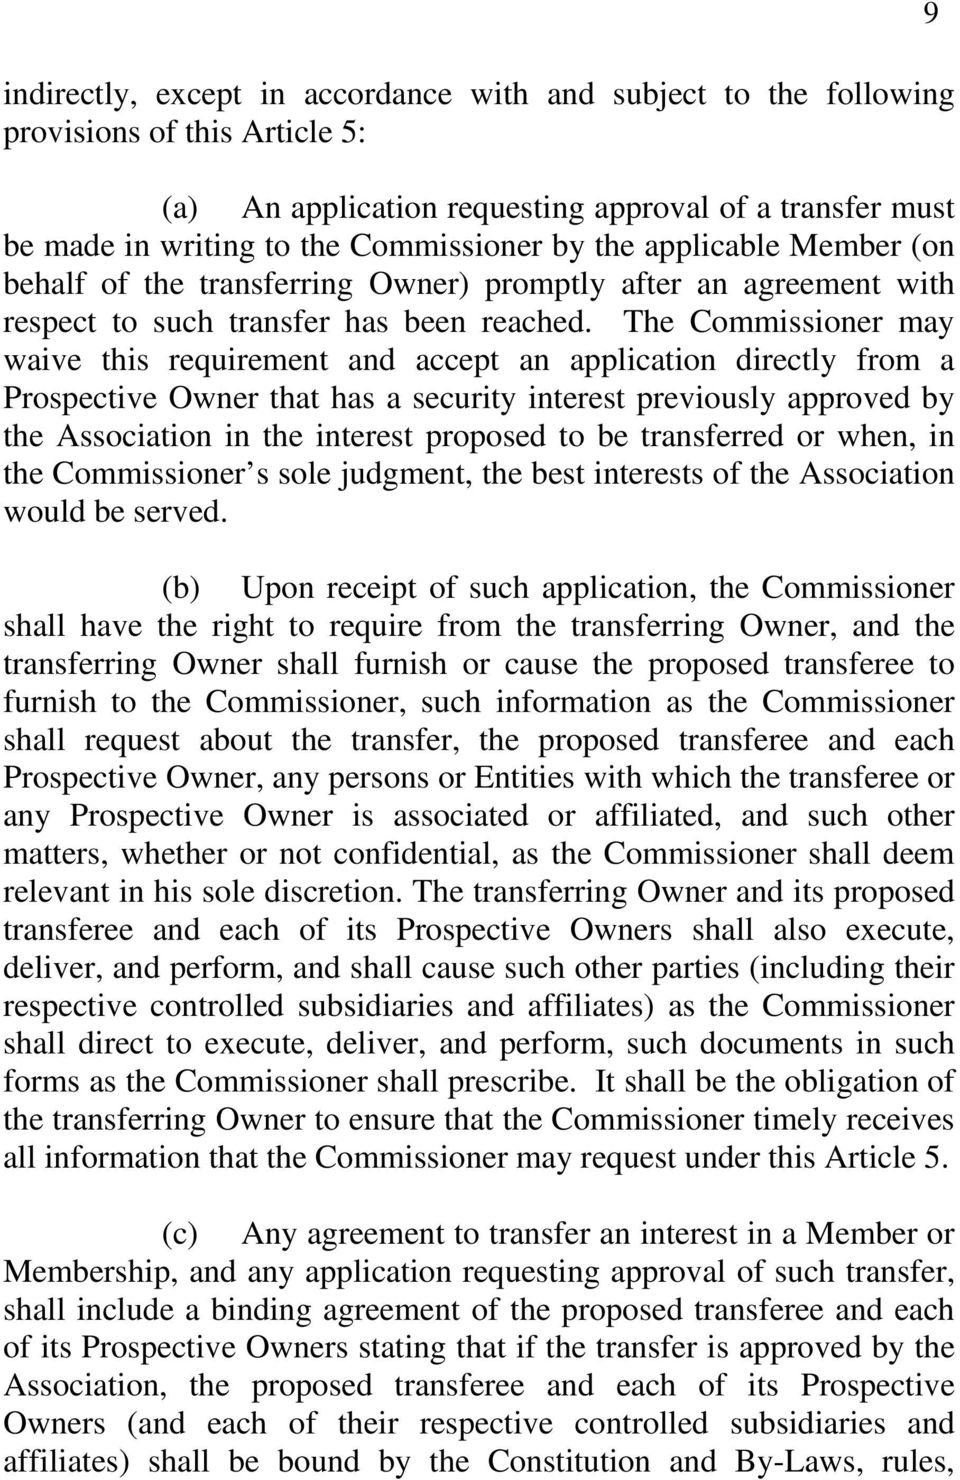 The Commissioner may waive this requirement and accept an application directly from a Prospective Owner that has a security interest previously approved by the Association in the interest proposed to